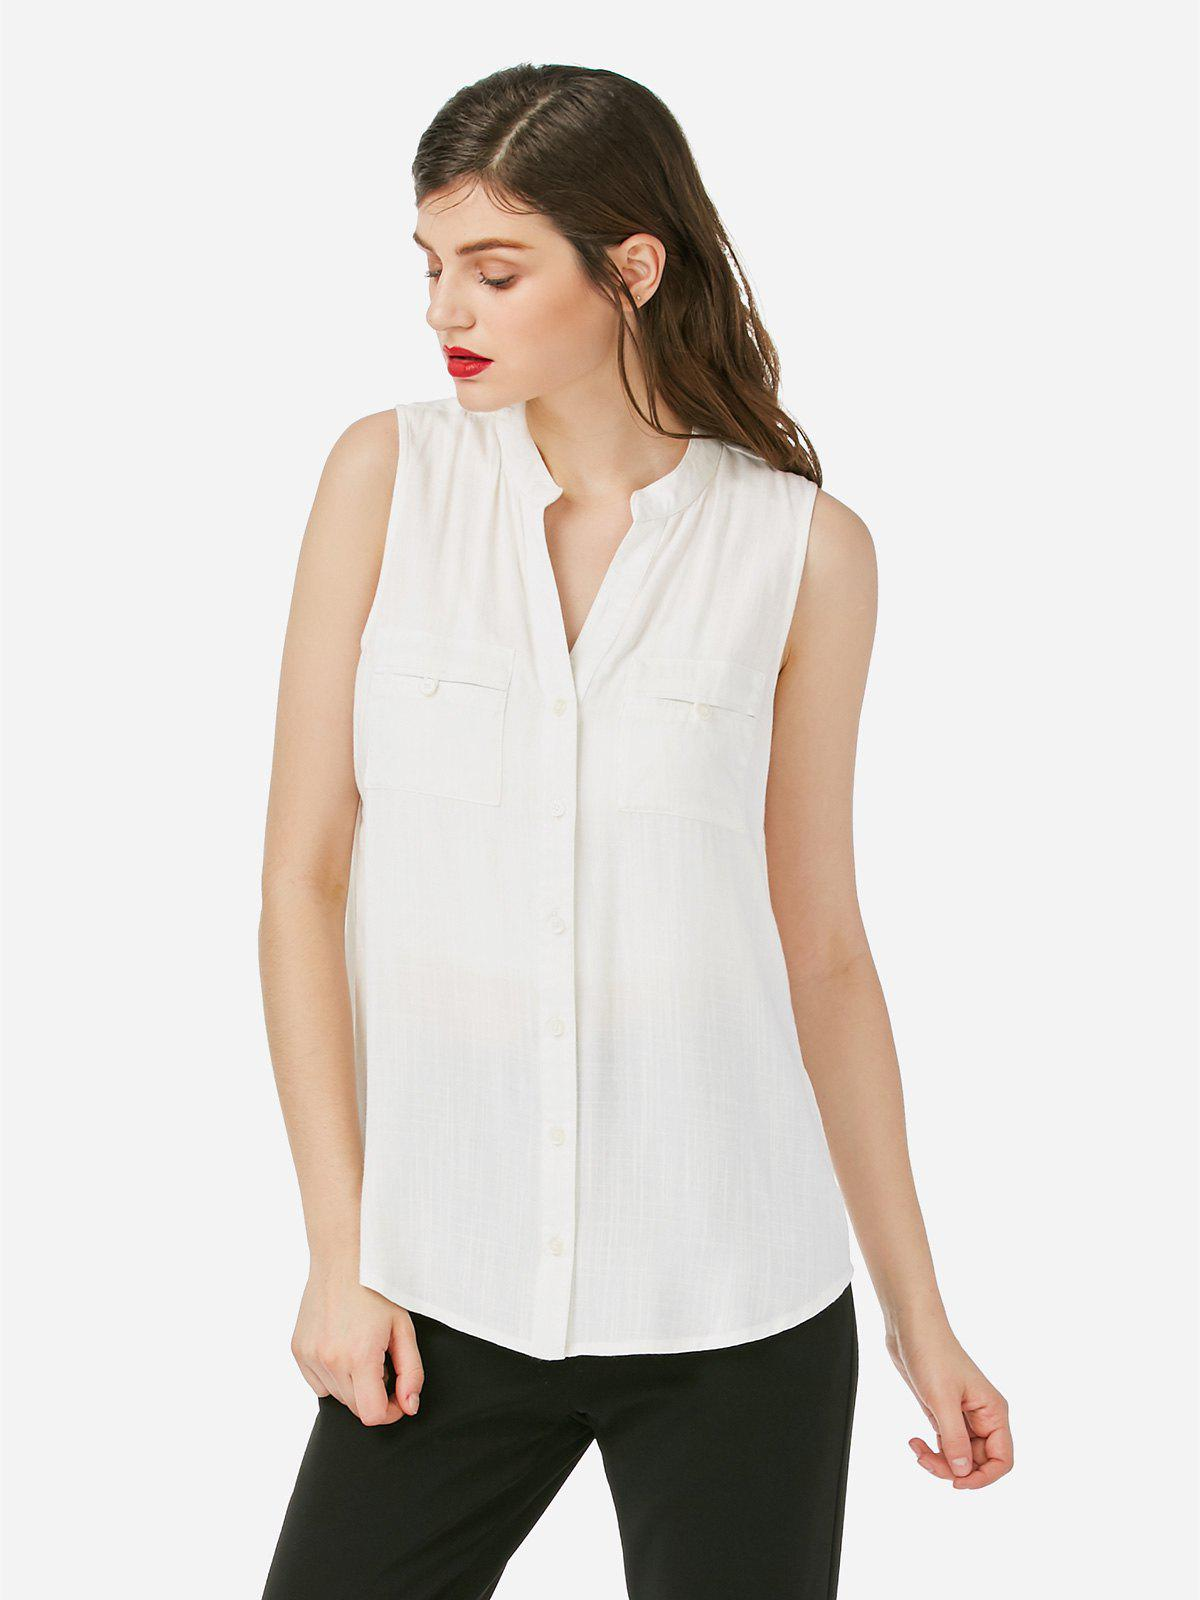 ZAN.STYLE Sleeveless Blouse - WHITE M